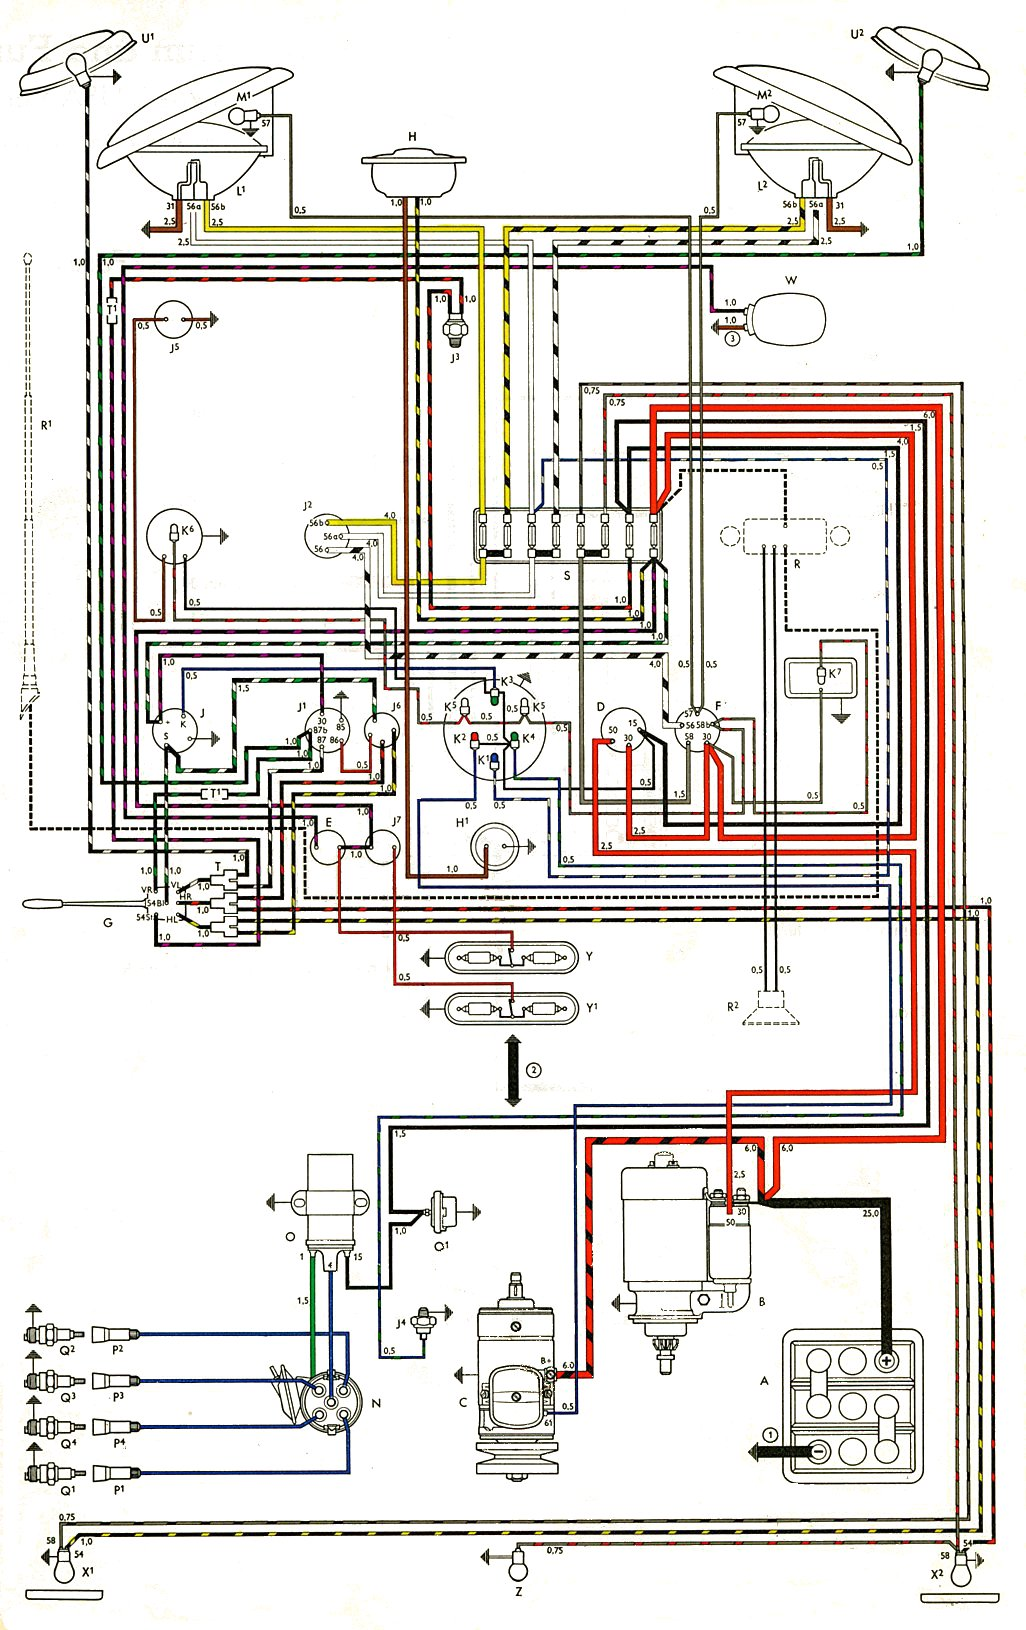 Vw Bus Wiring Location - Wiring Diagrams Dock